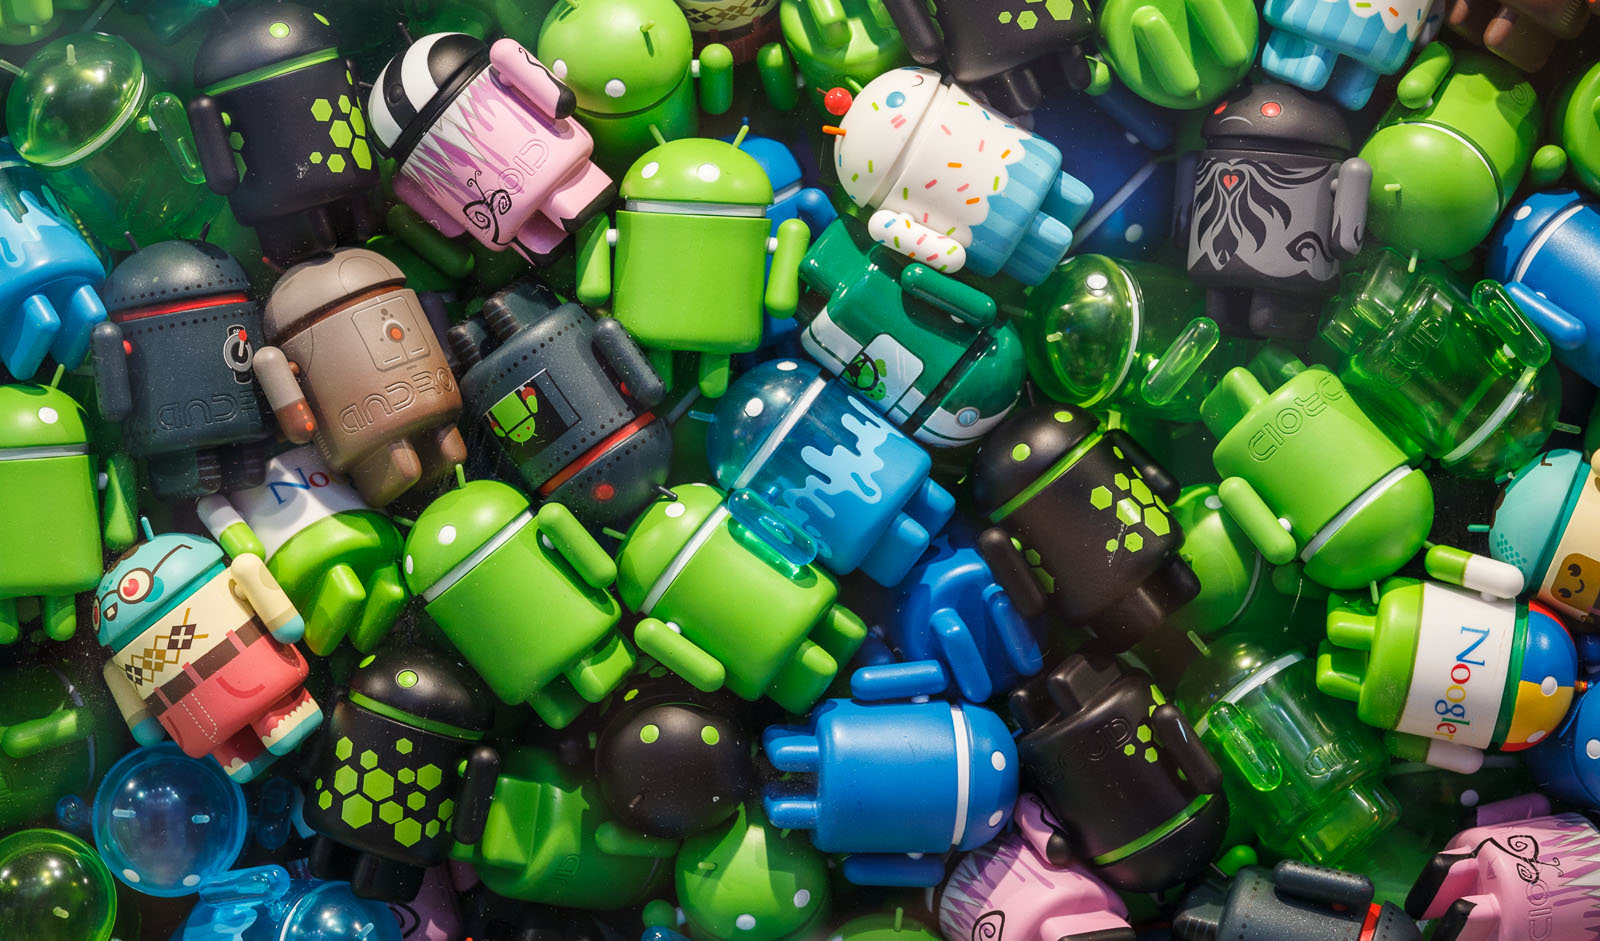 Androids galore